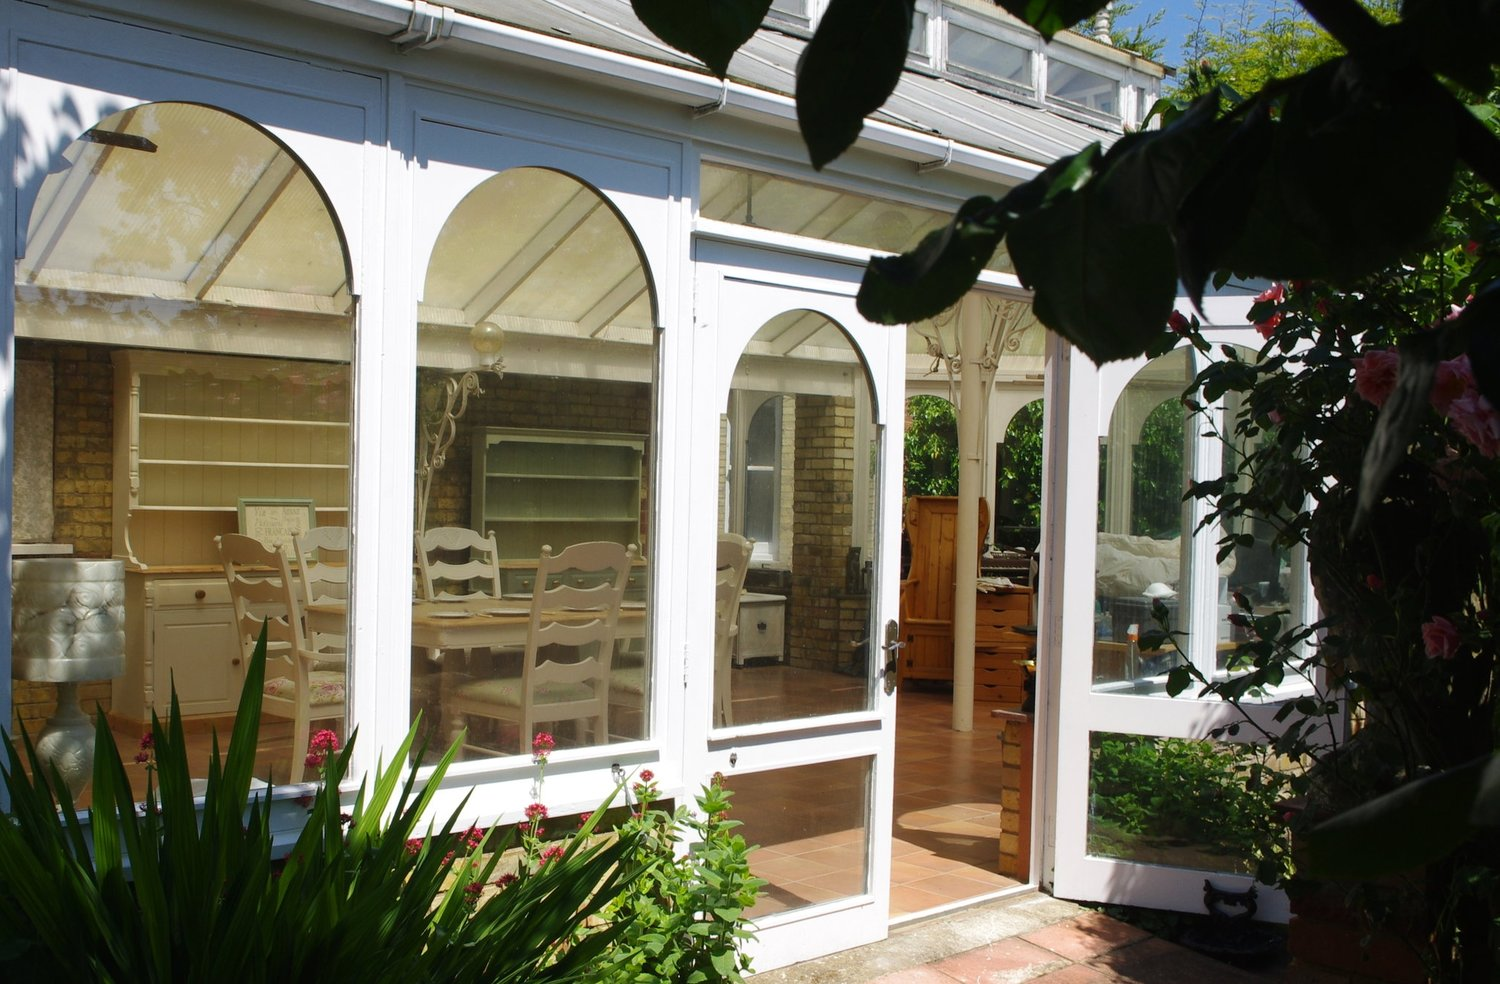 The Shabby Chic Conservatory